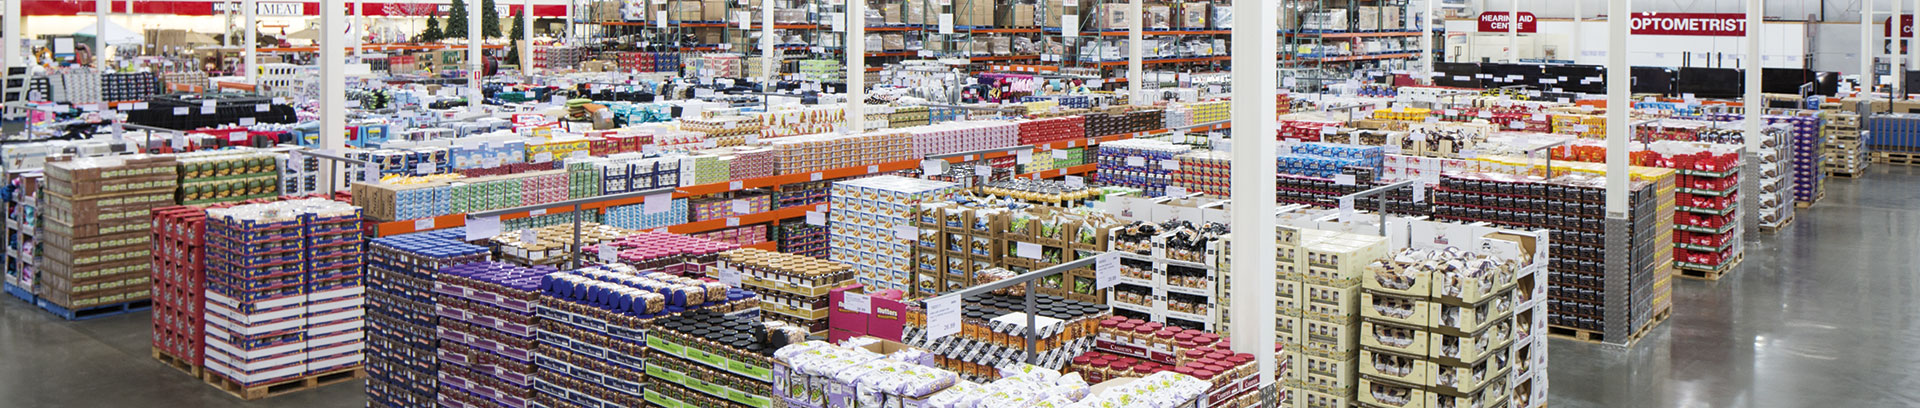 Costco warehouse internal image